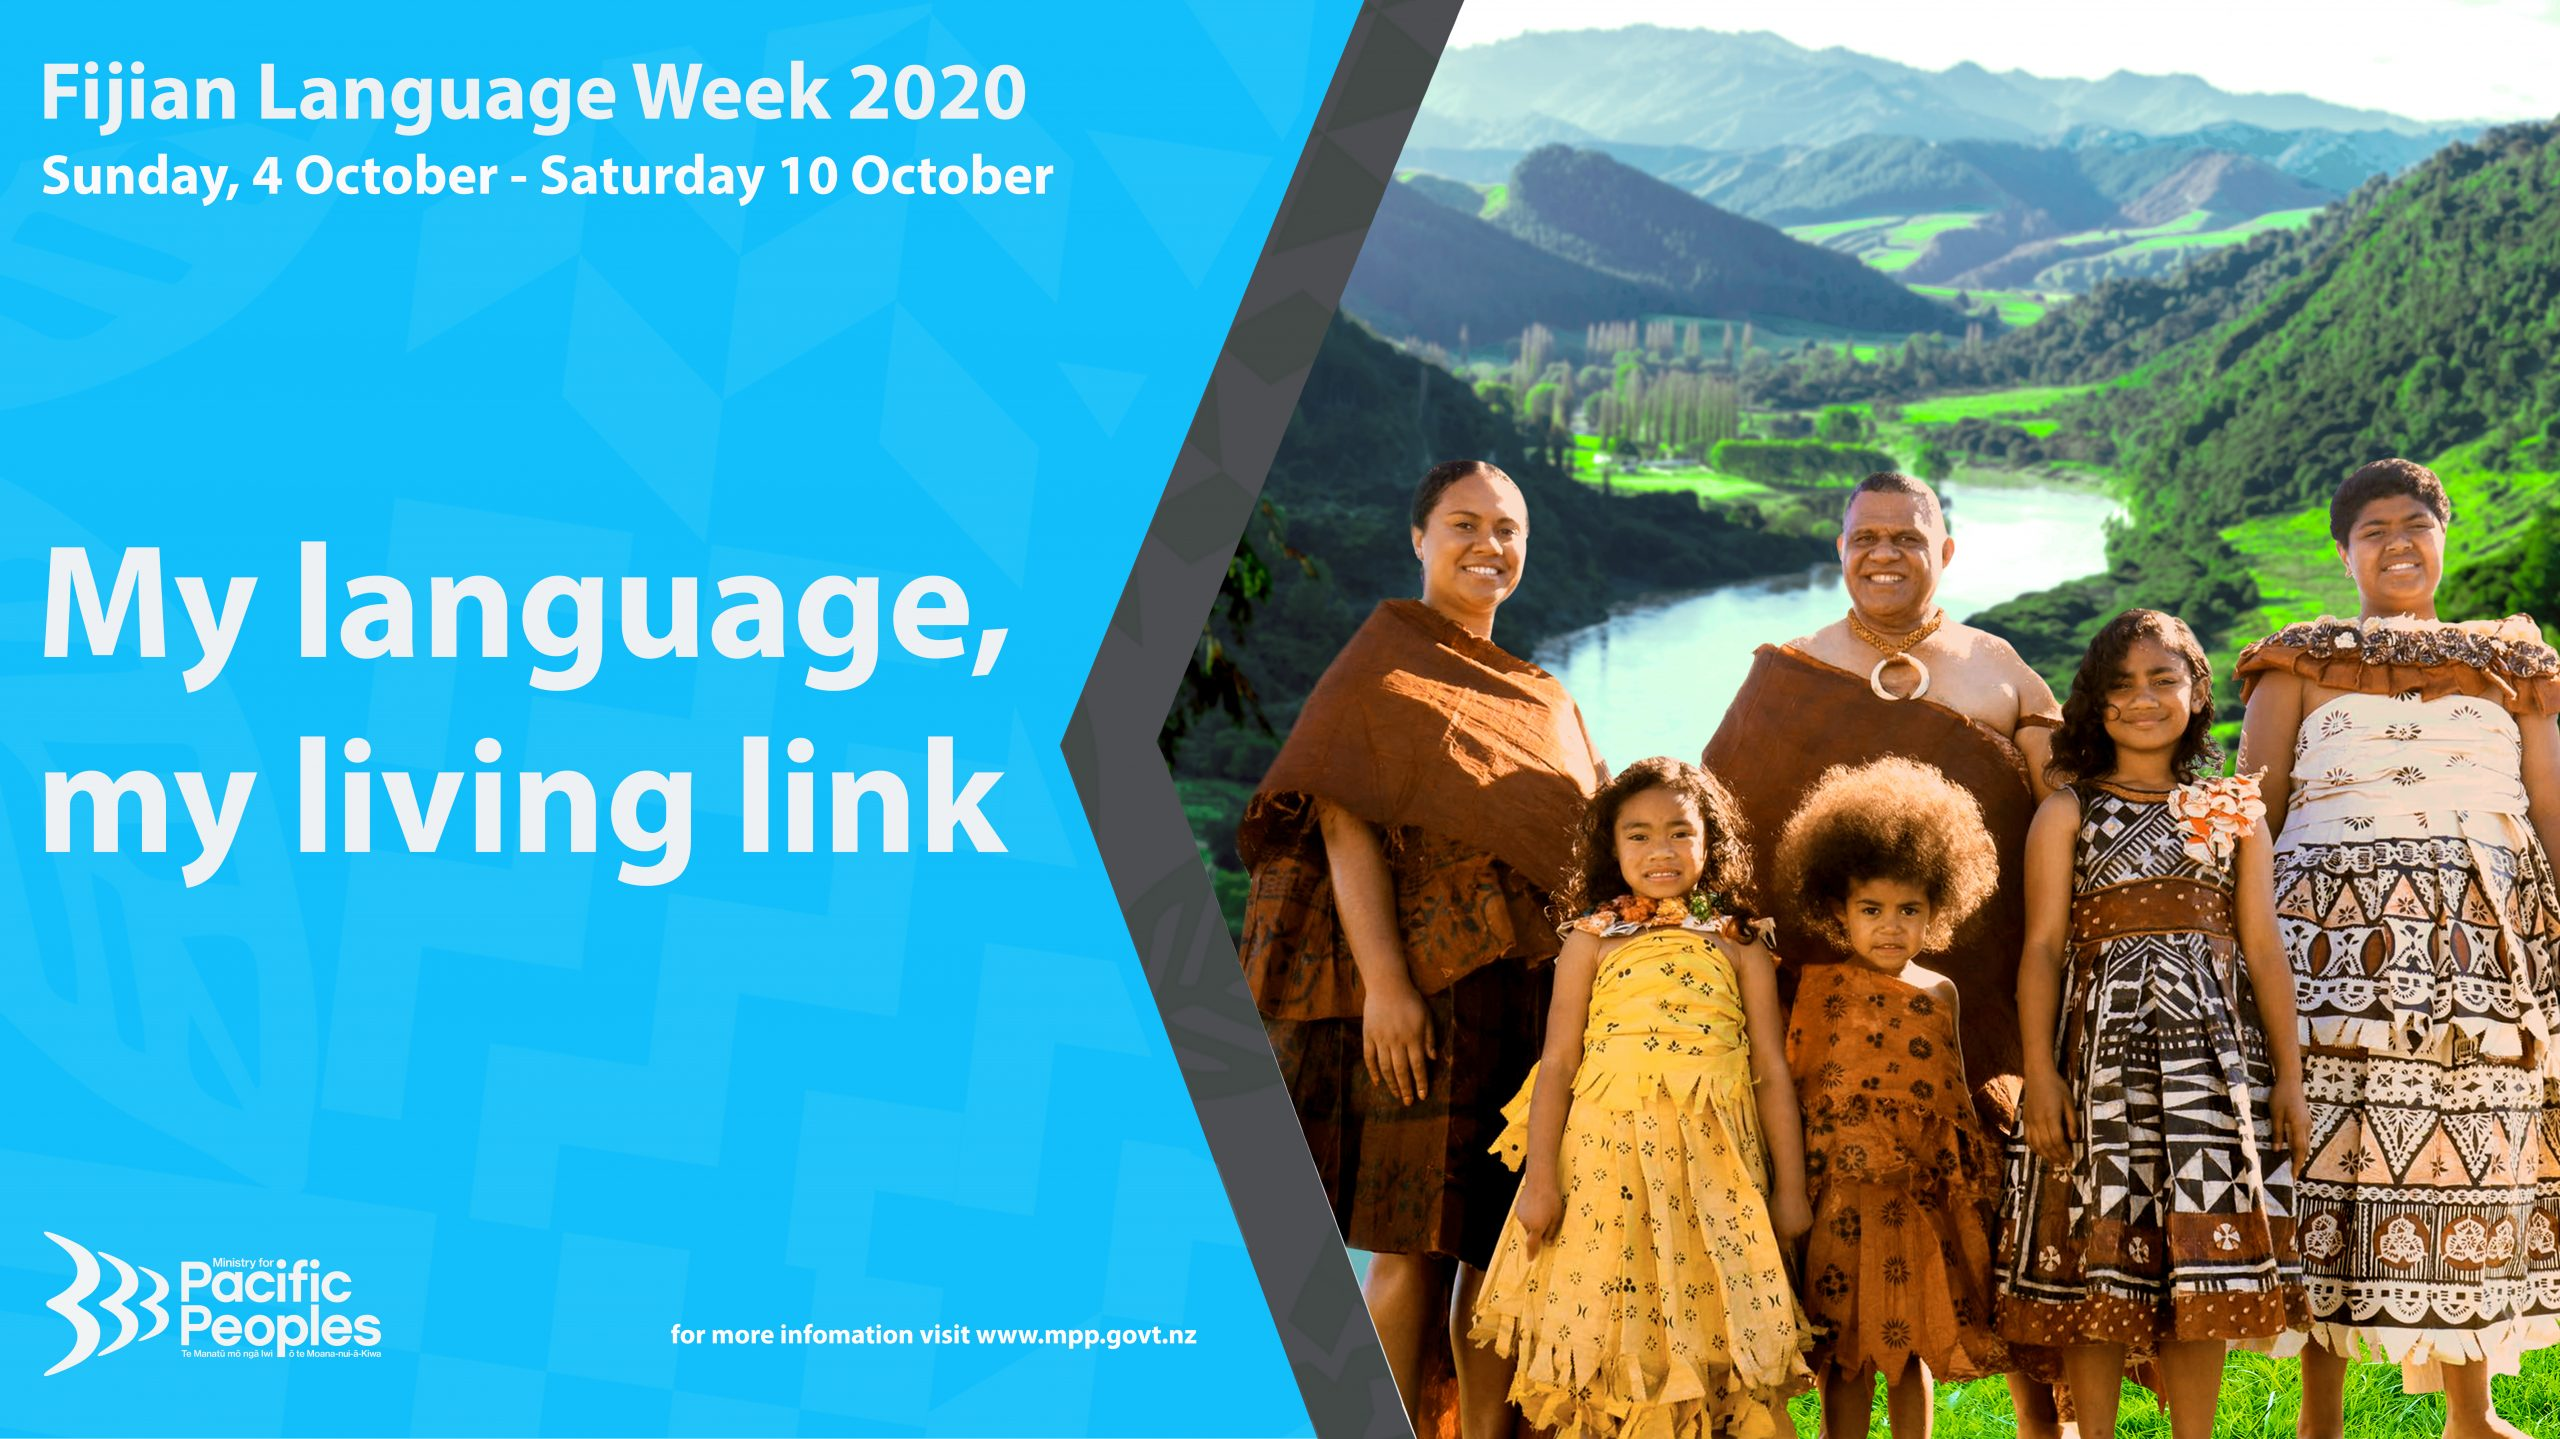 Fijian-Language-Week-Scoial-Banner-English[1]